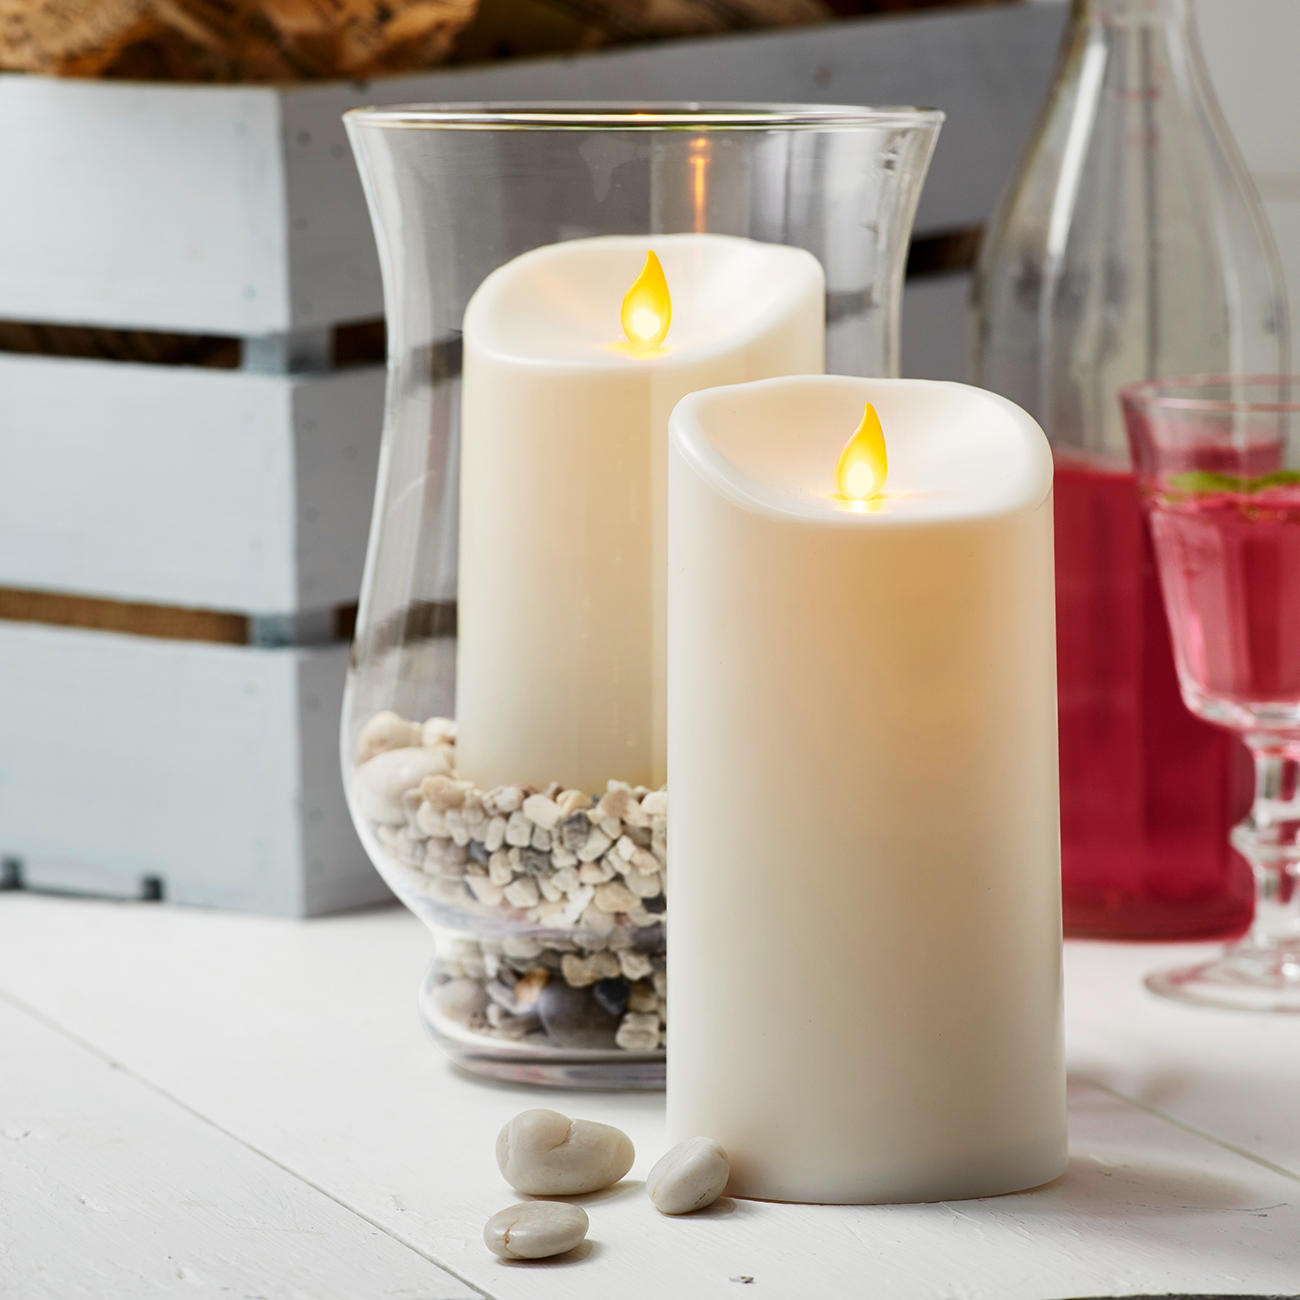 Buy Candles Online Buy Twinkle Led Outdoor Candles Online